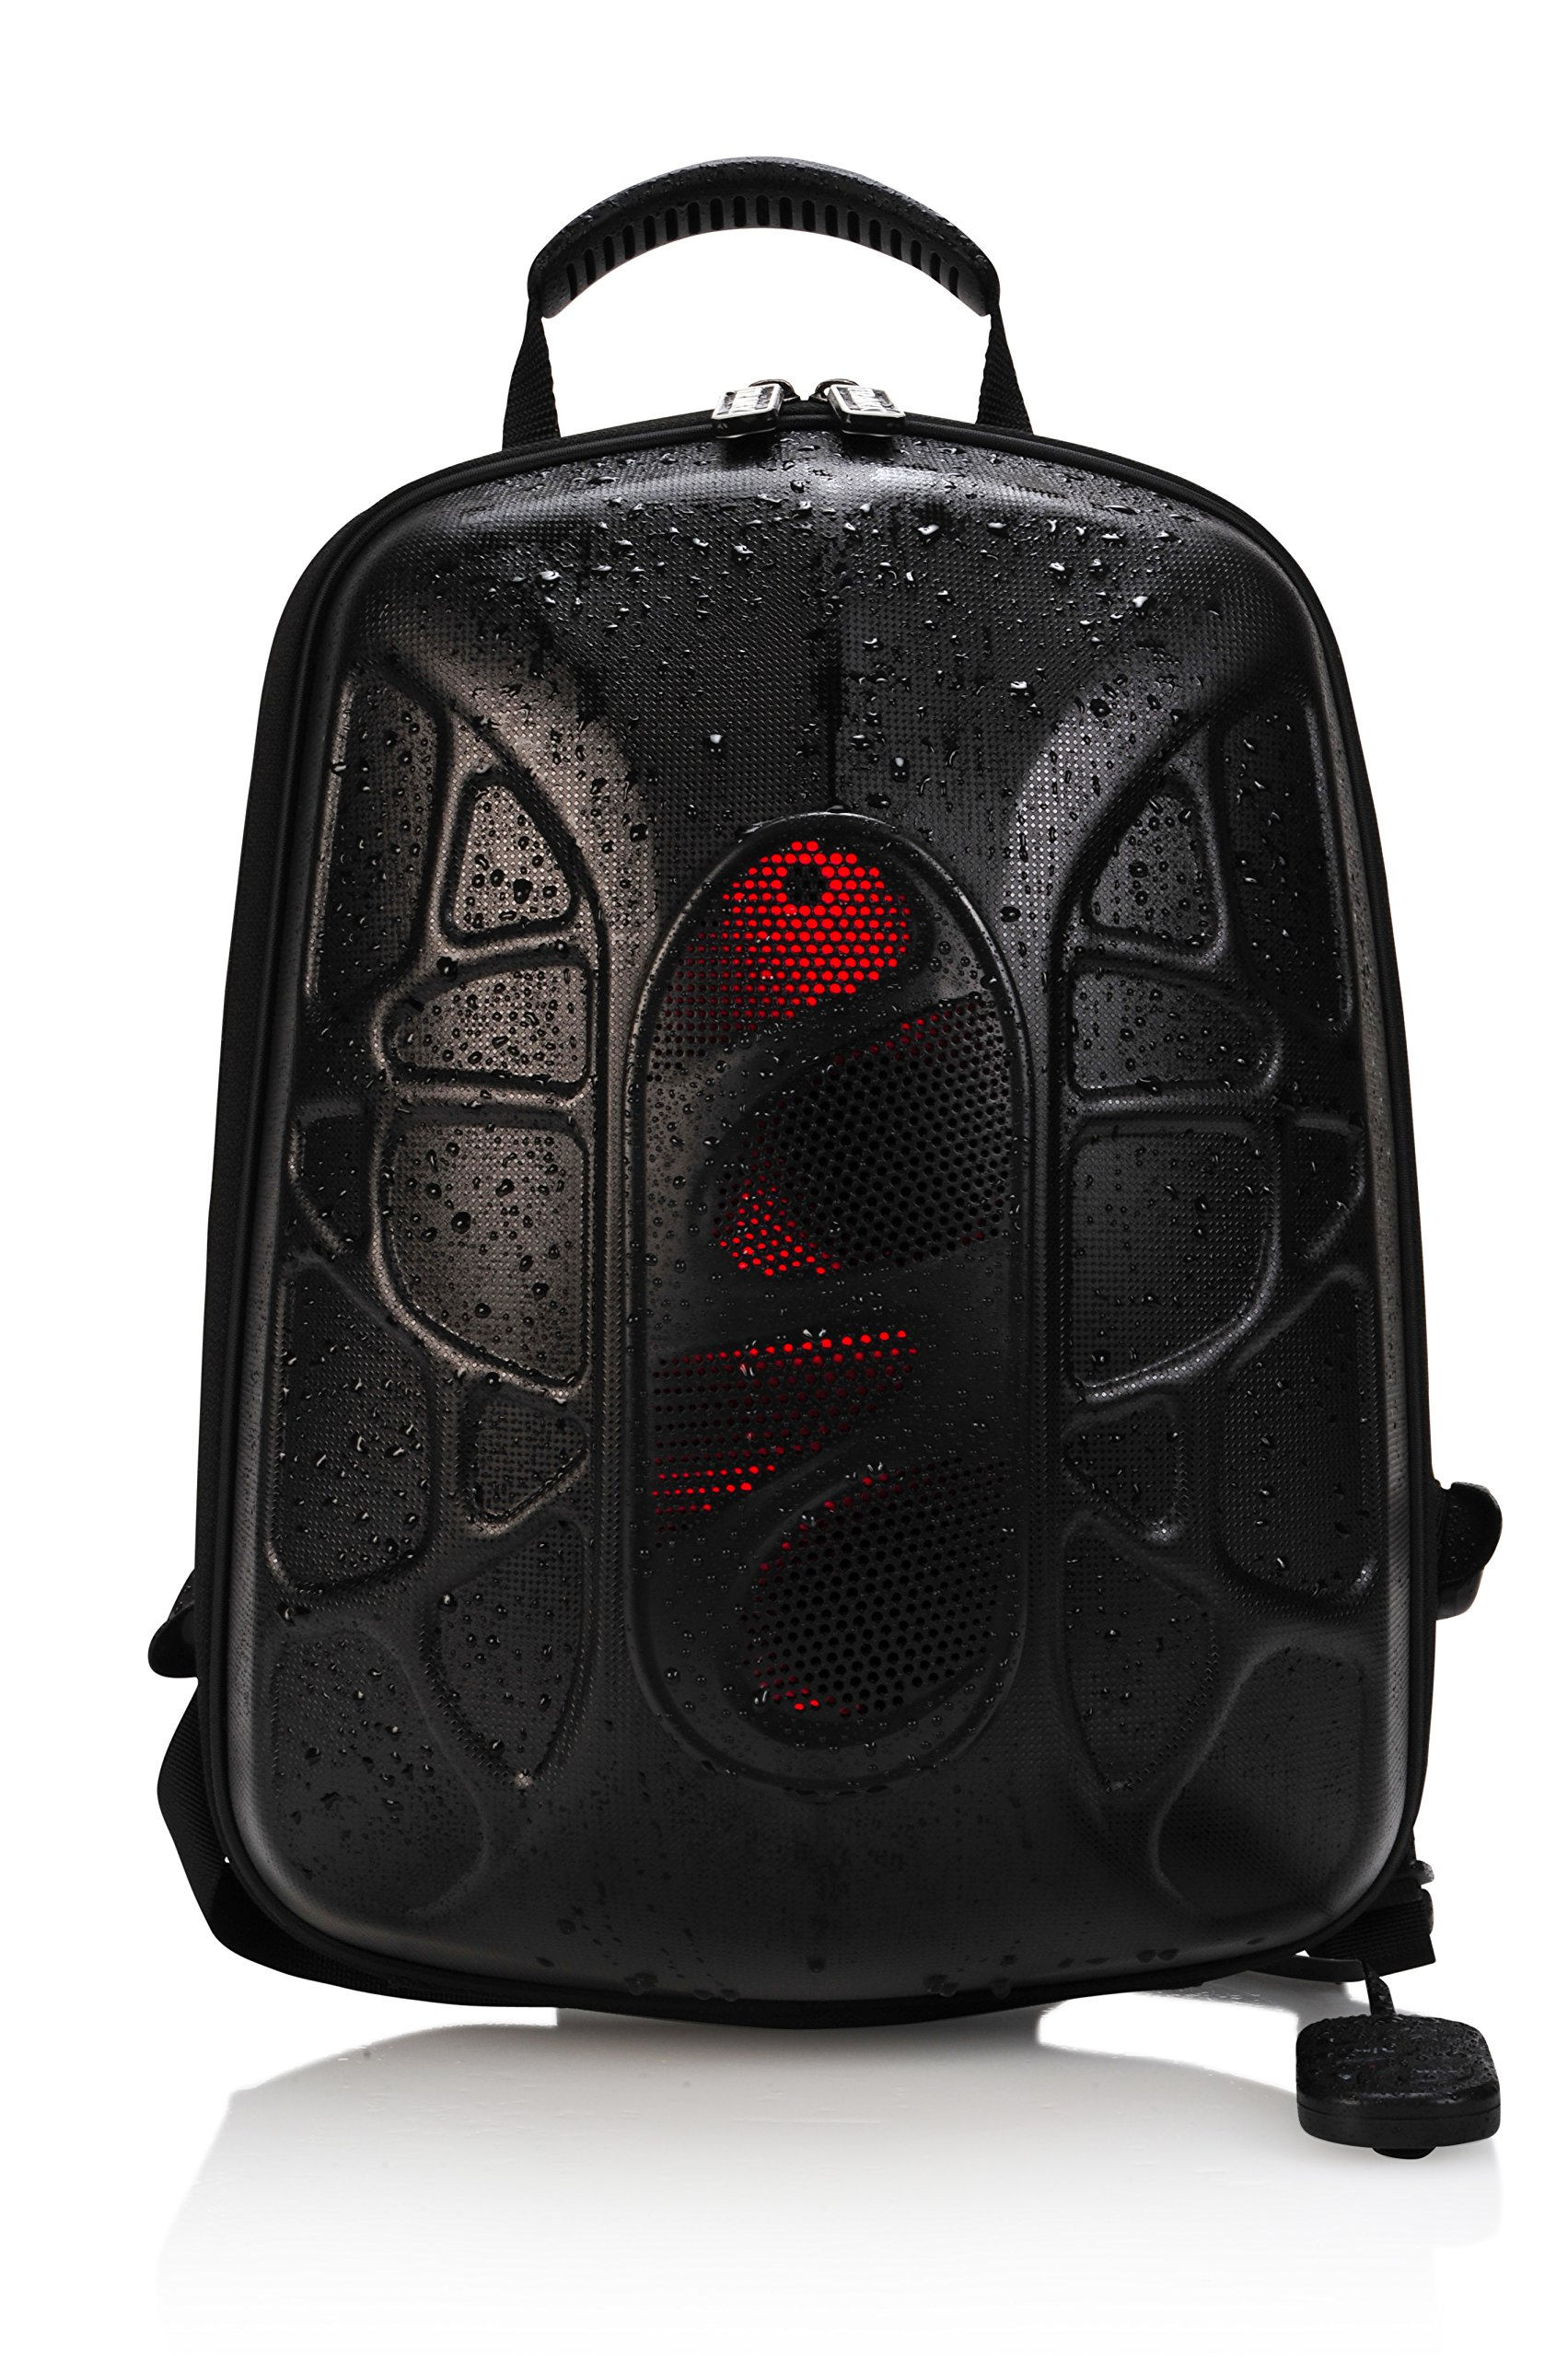 TRAKK SHELL Hiking Backpack with Waterproof Speaker - Lightweight Max-Bass Waterproof Shockproof Dustproof Stain Resistant Audio Backpack with LED and Controller